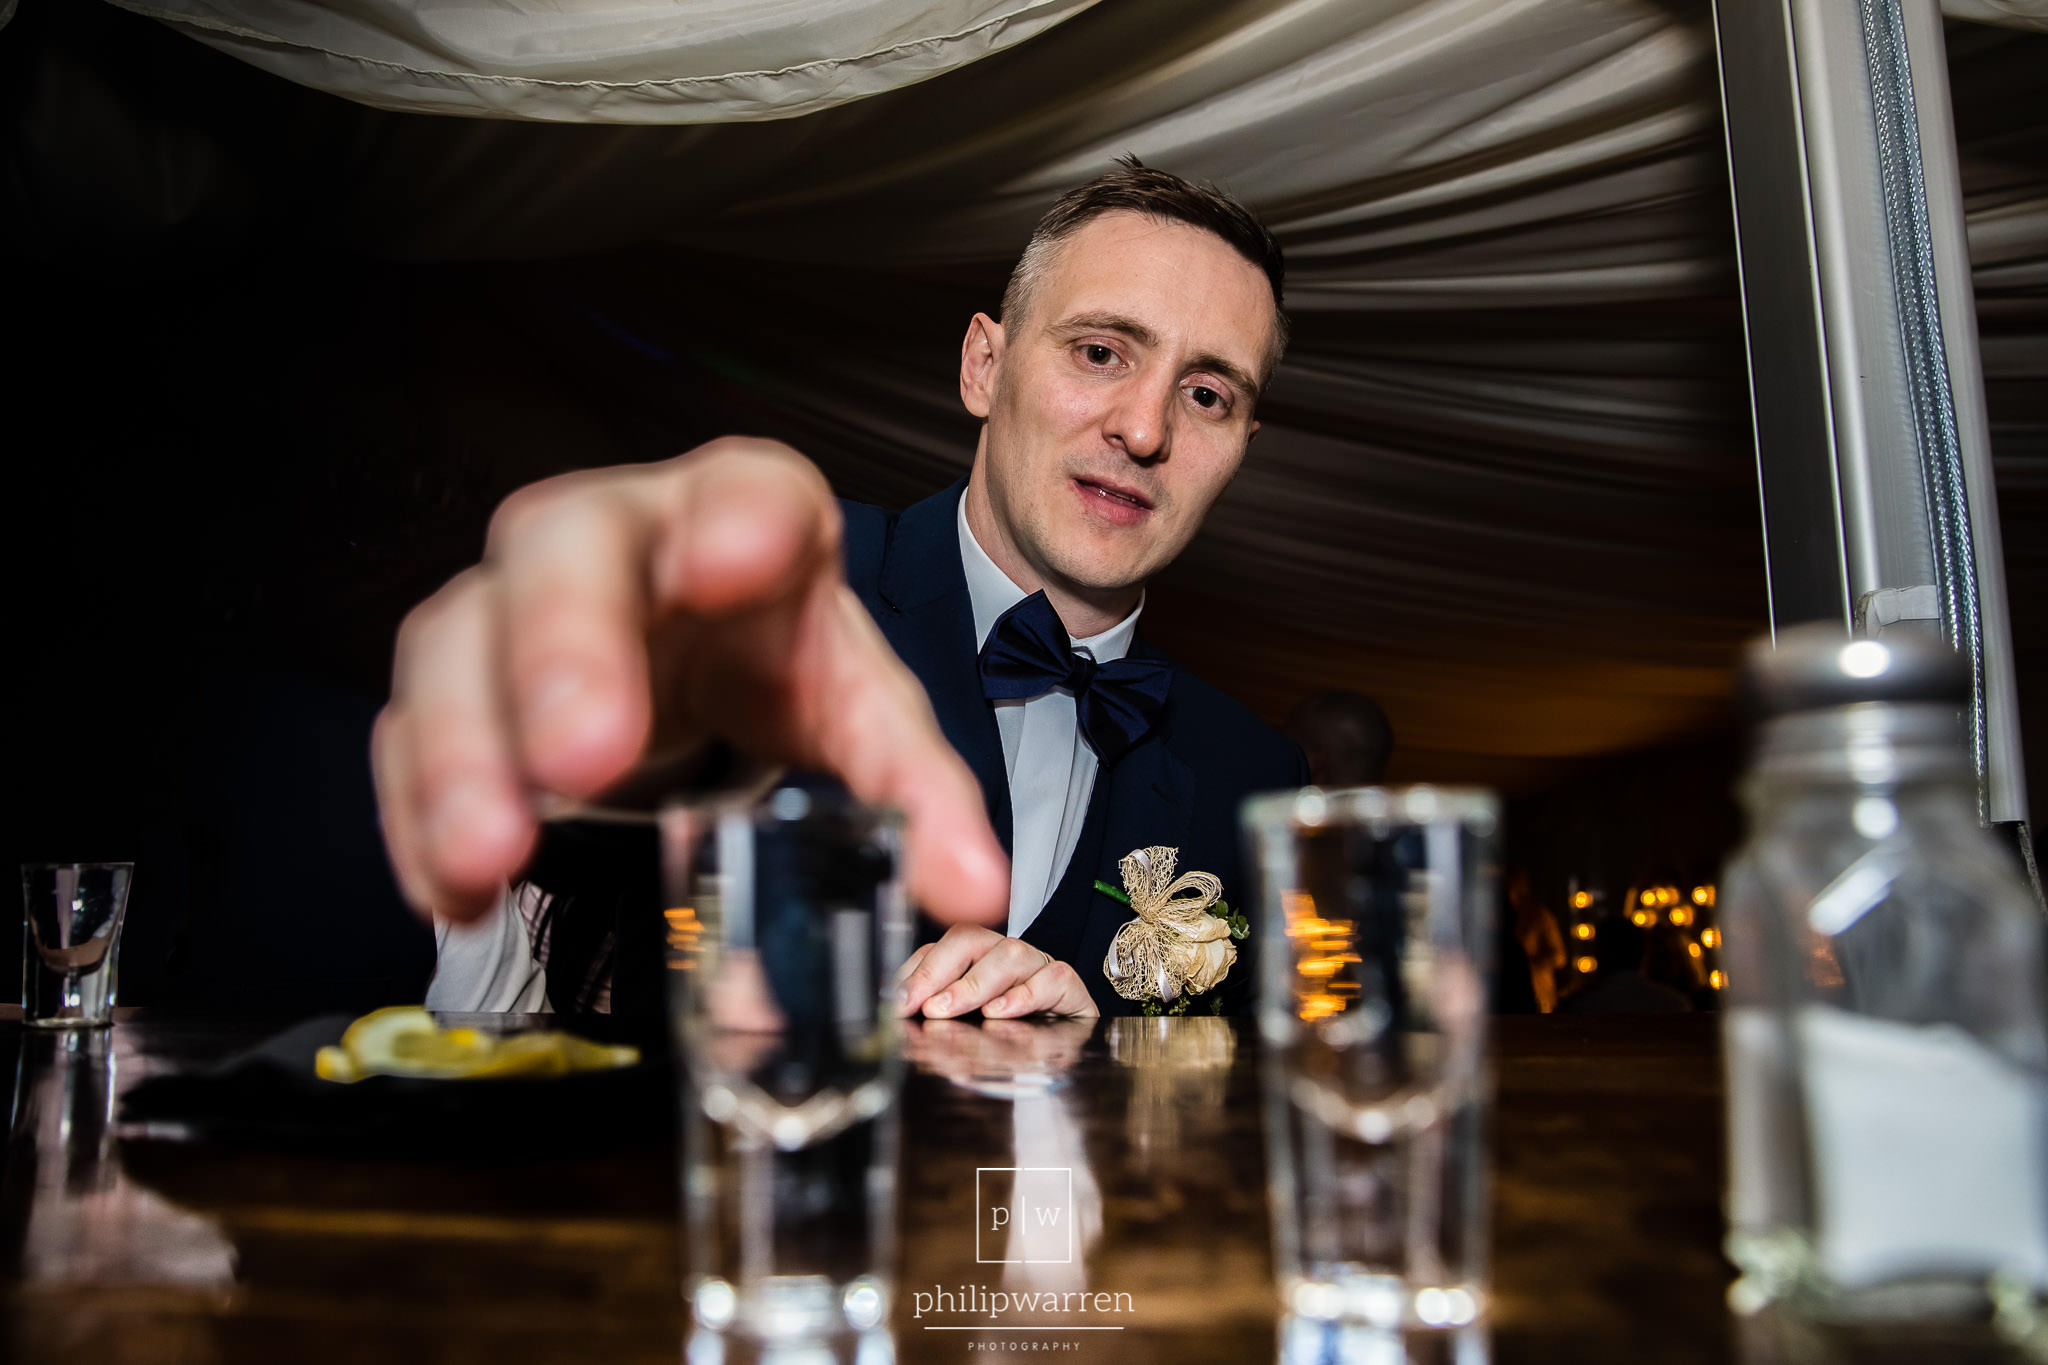 groom reaching for a shot of tequila at the bar in bryngarw hous